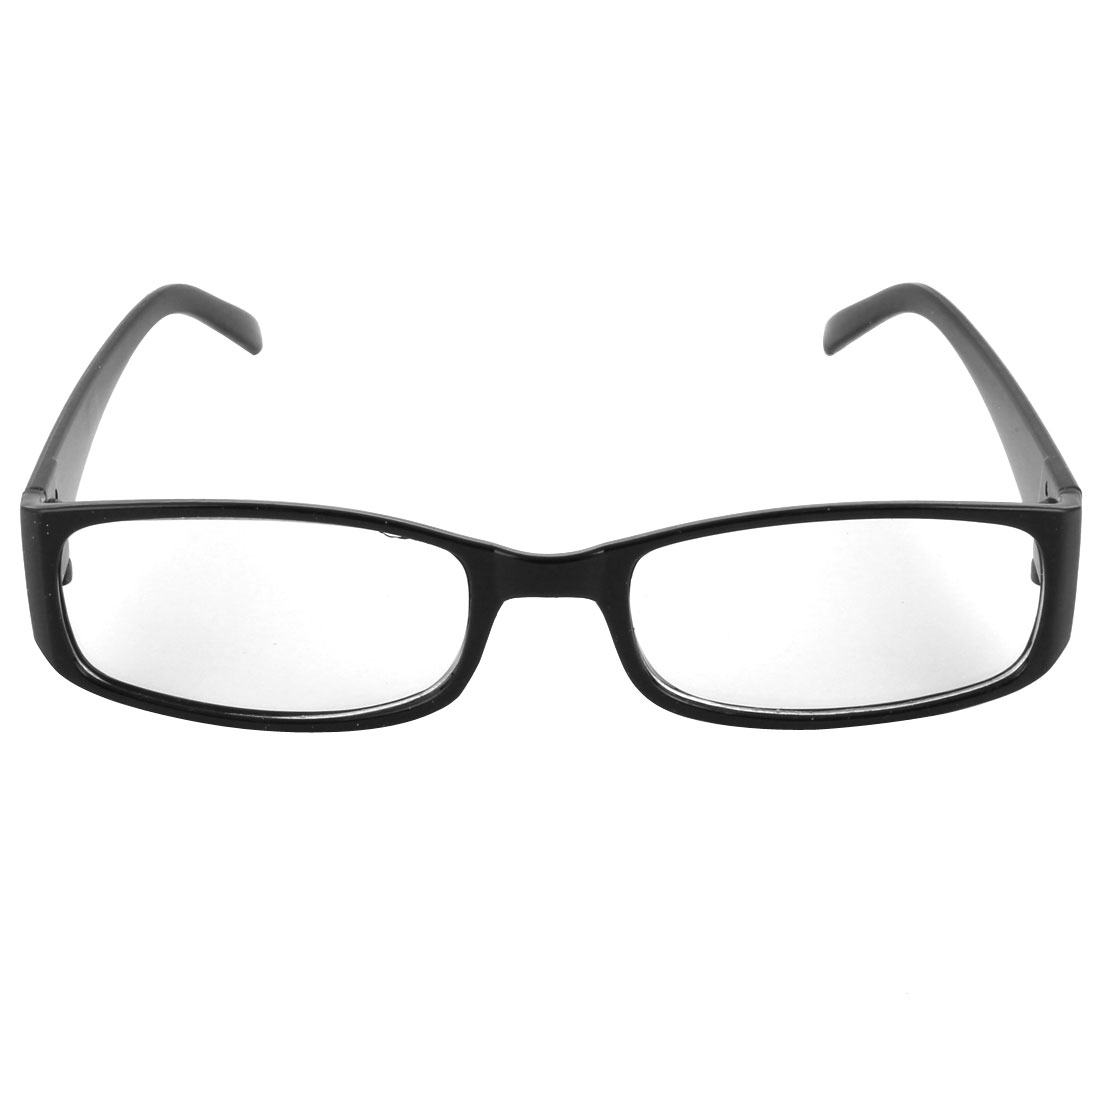 Unisex Black Plastic Full Rim Frame Clear Lens Glasses